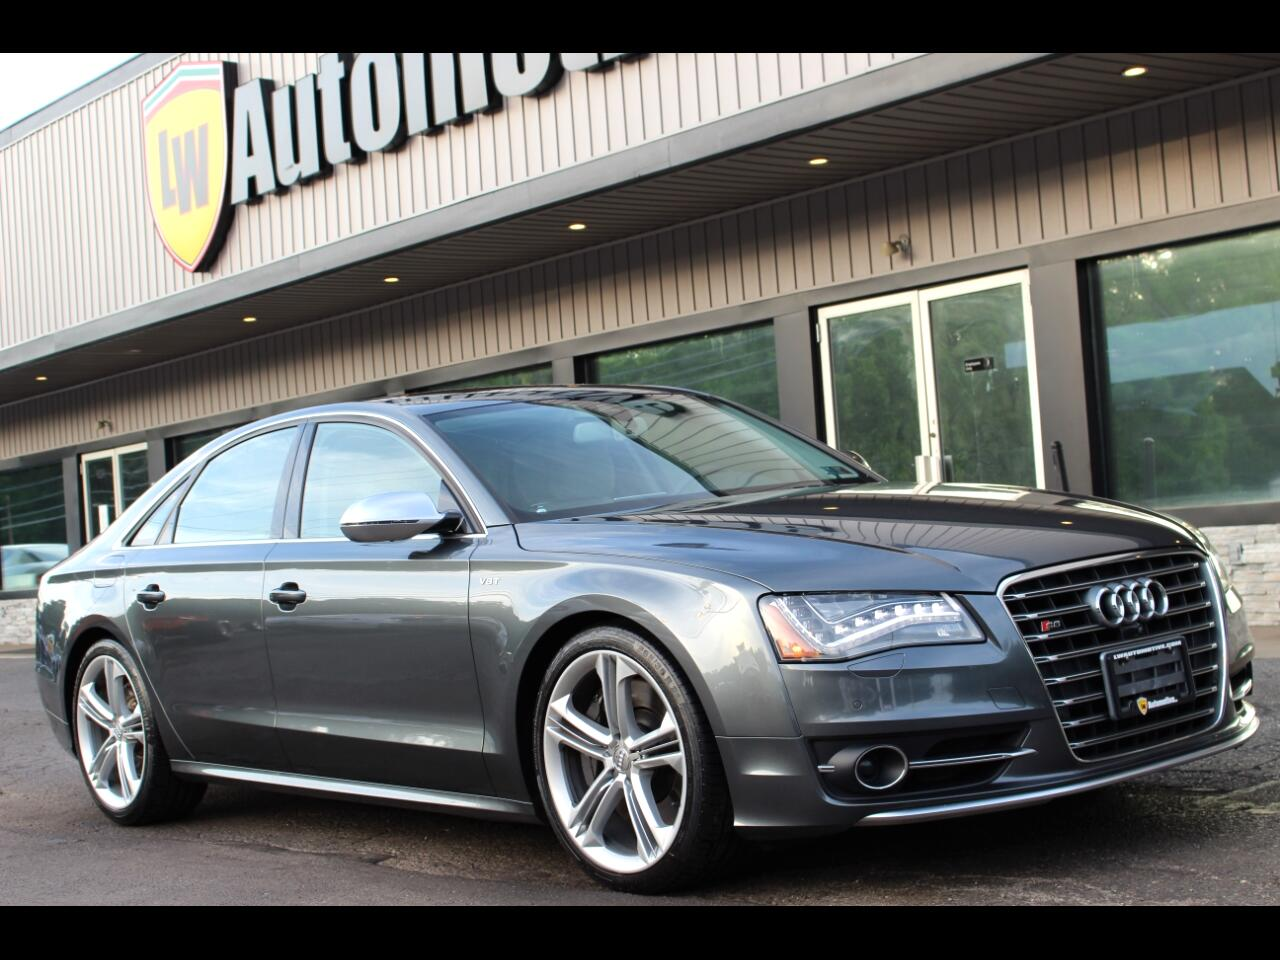 2013 Audi S8 4dr Sdn